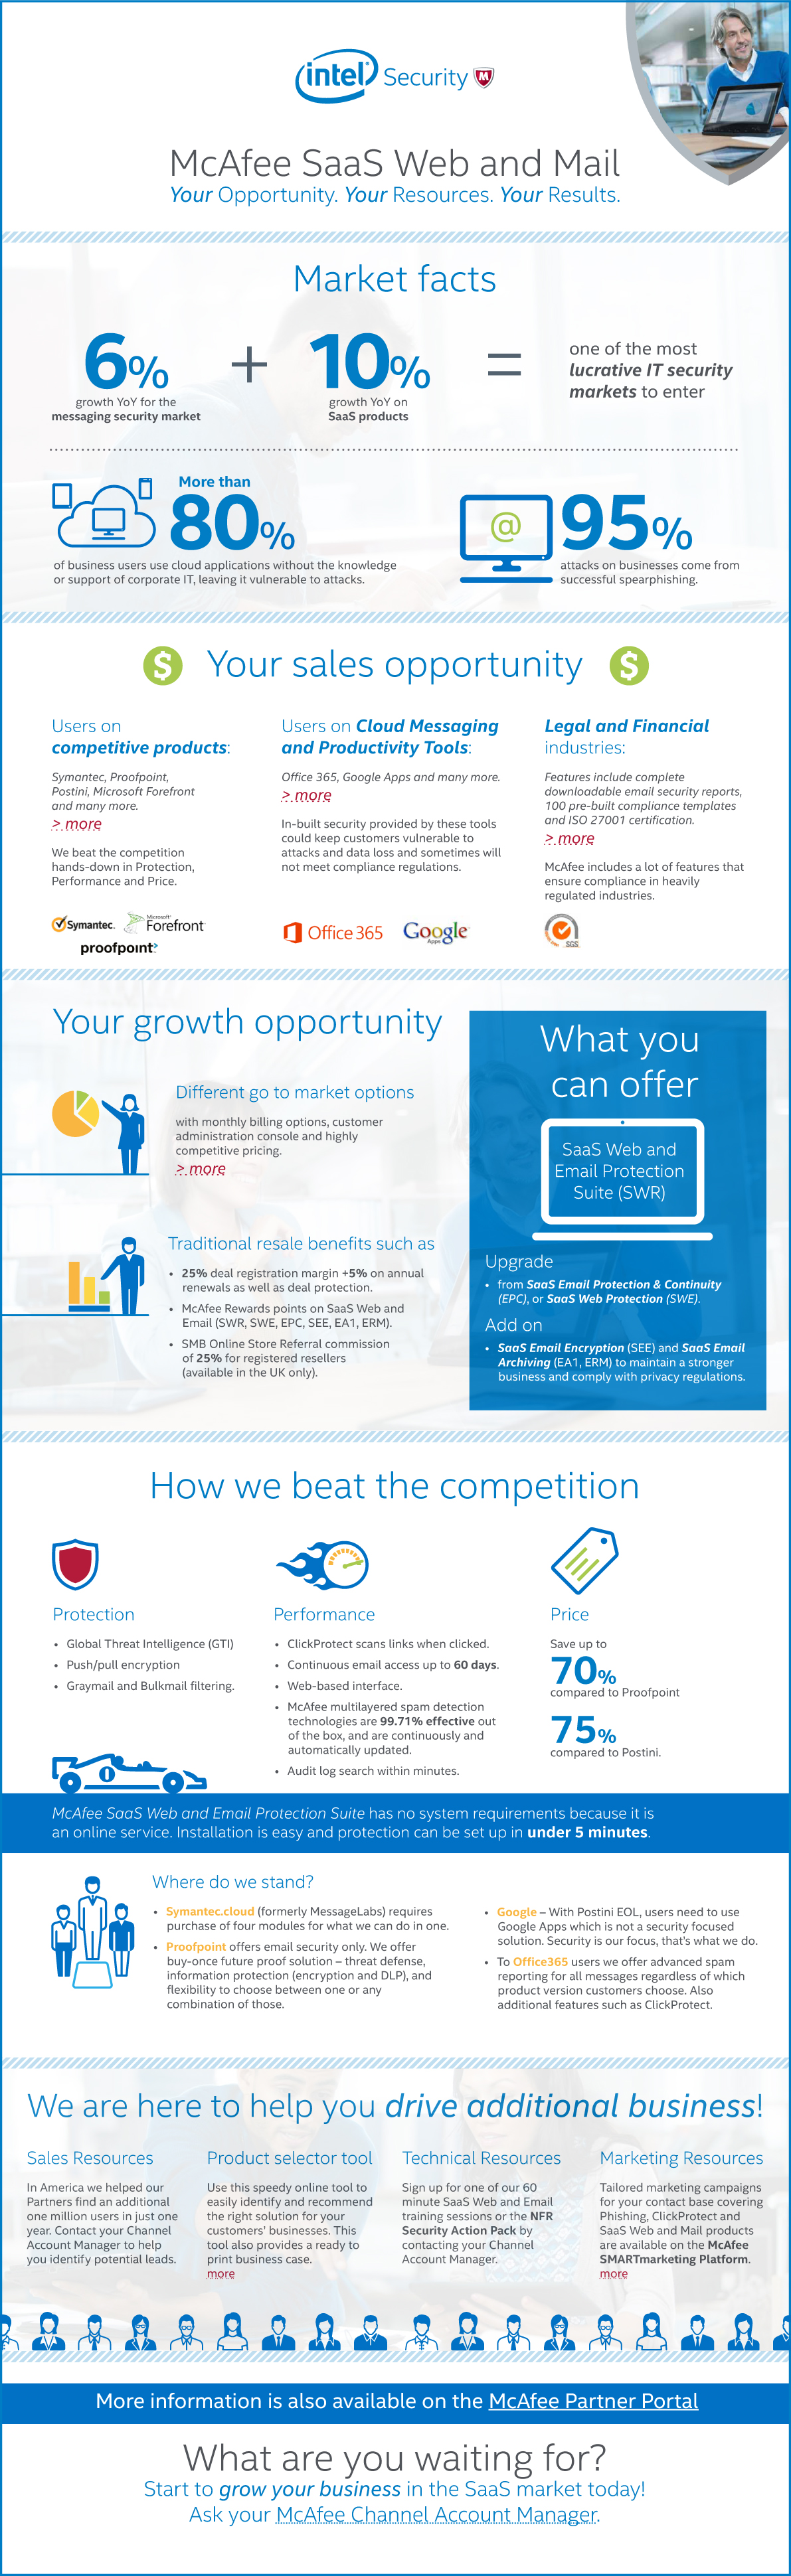 McAfee SaaS Web and Mail Your Opportunity. Your Resources. Your Results